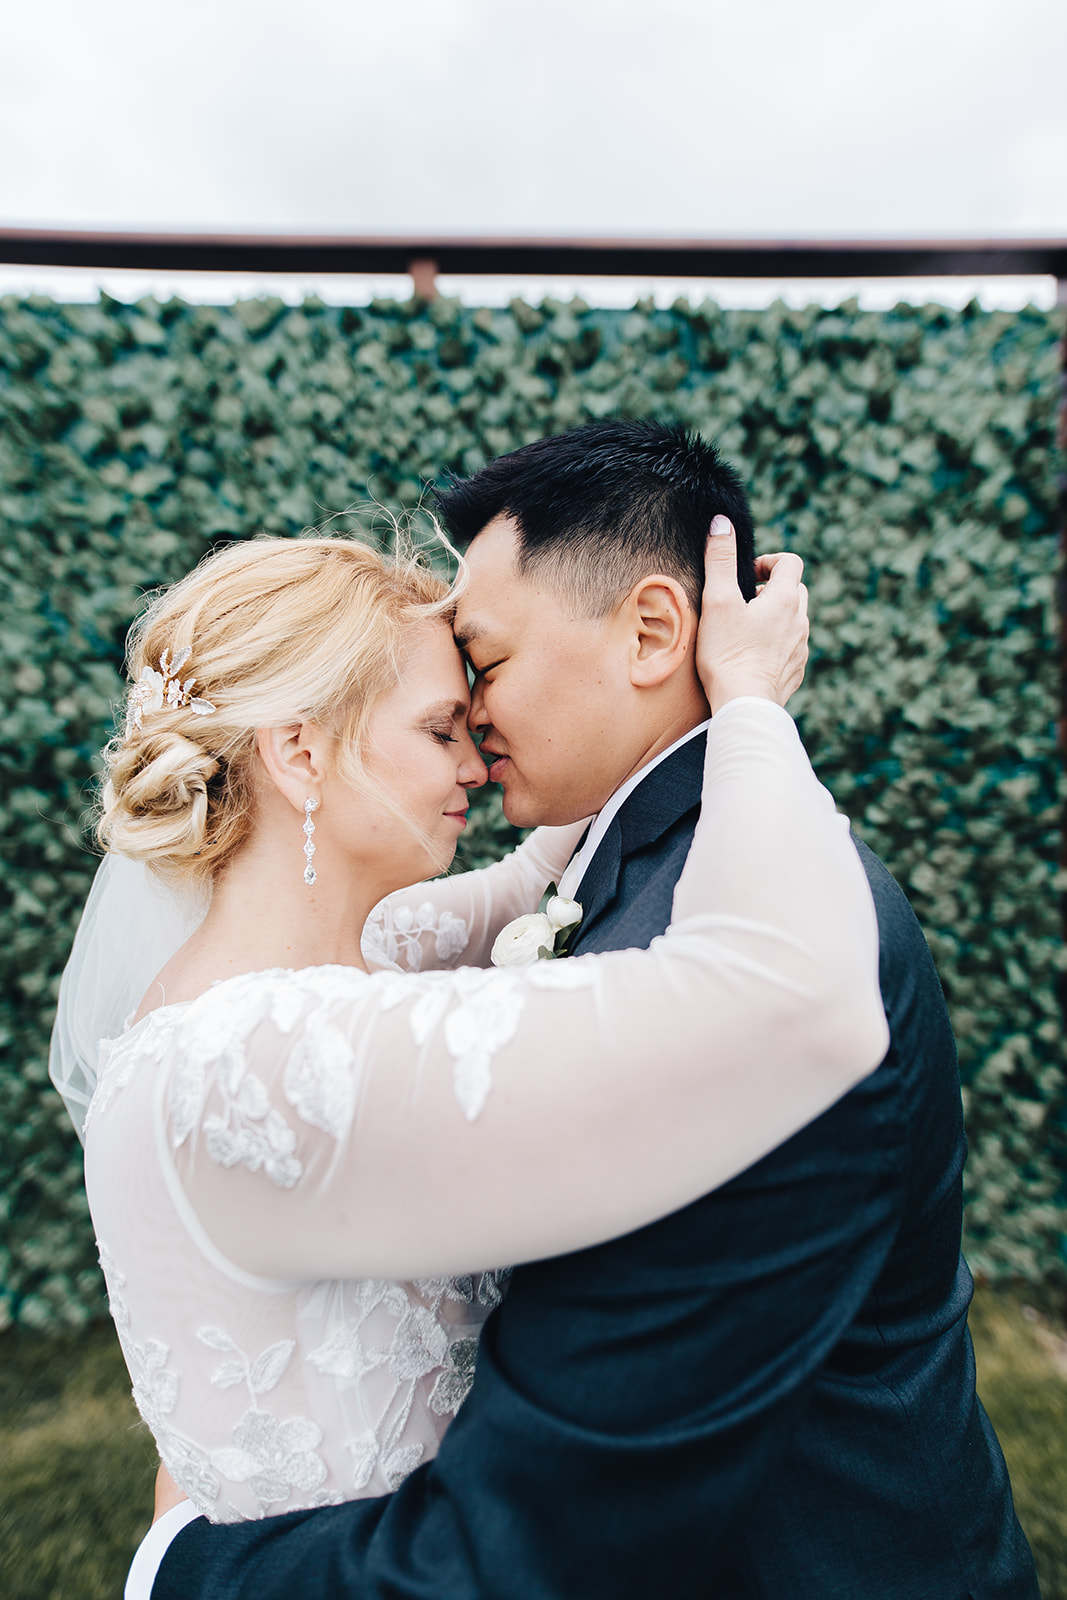 Bride and groom leaning foreheads together